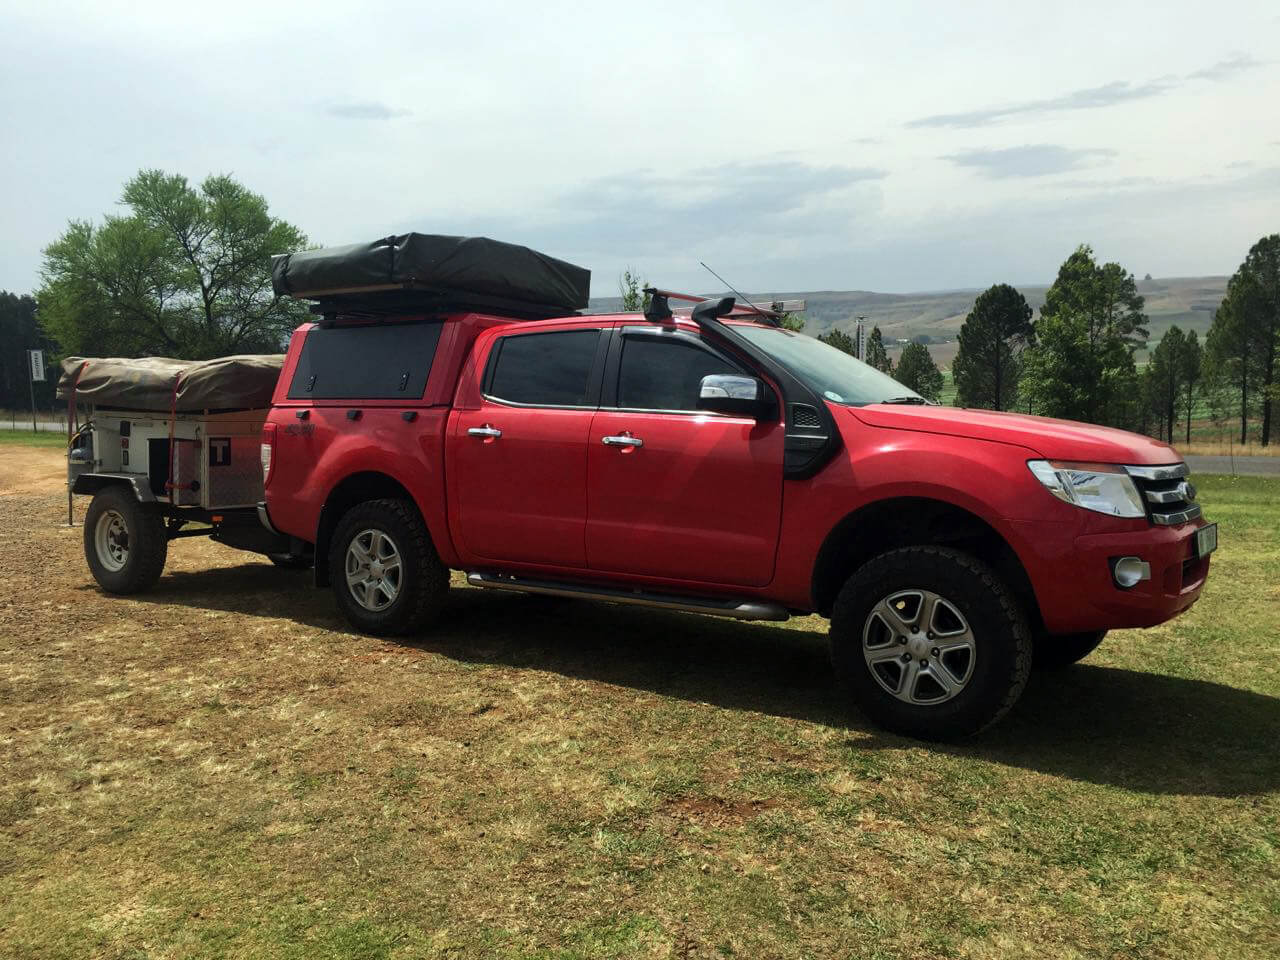 RSI SMARTCANOPY® - Ford Ranger Canopy 2016 - Colorado Red-1